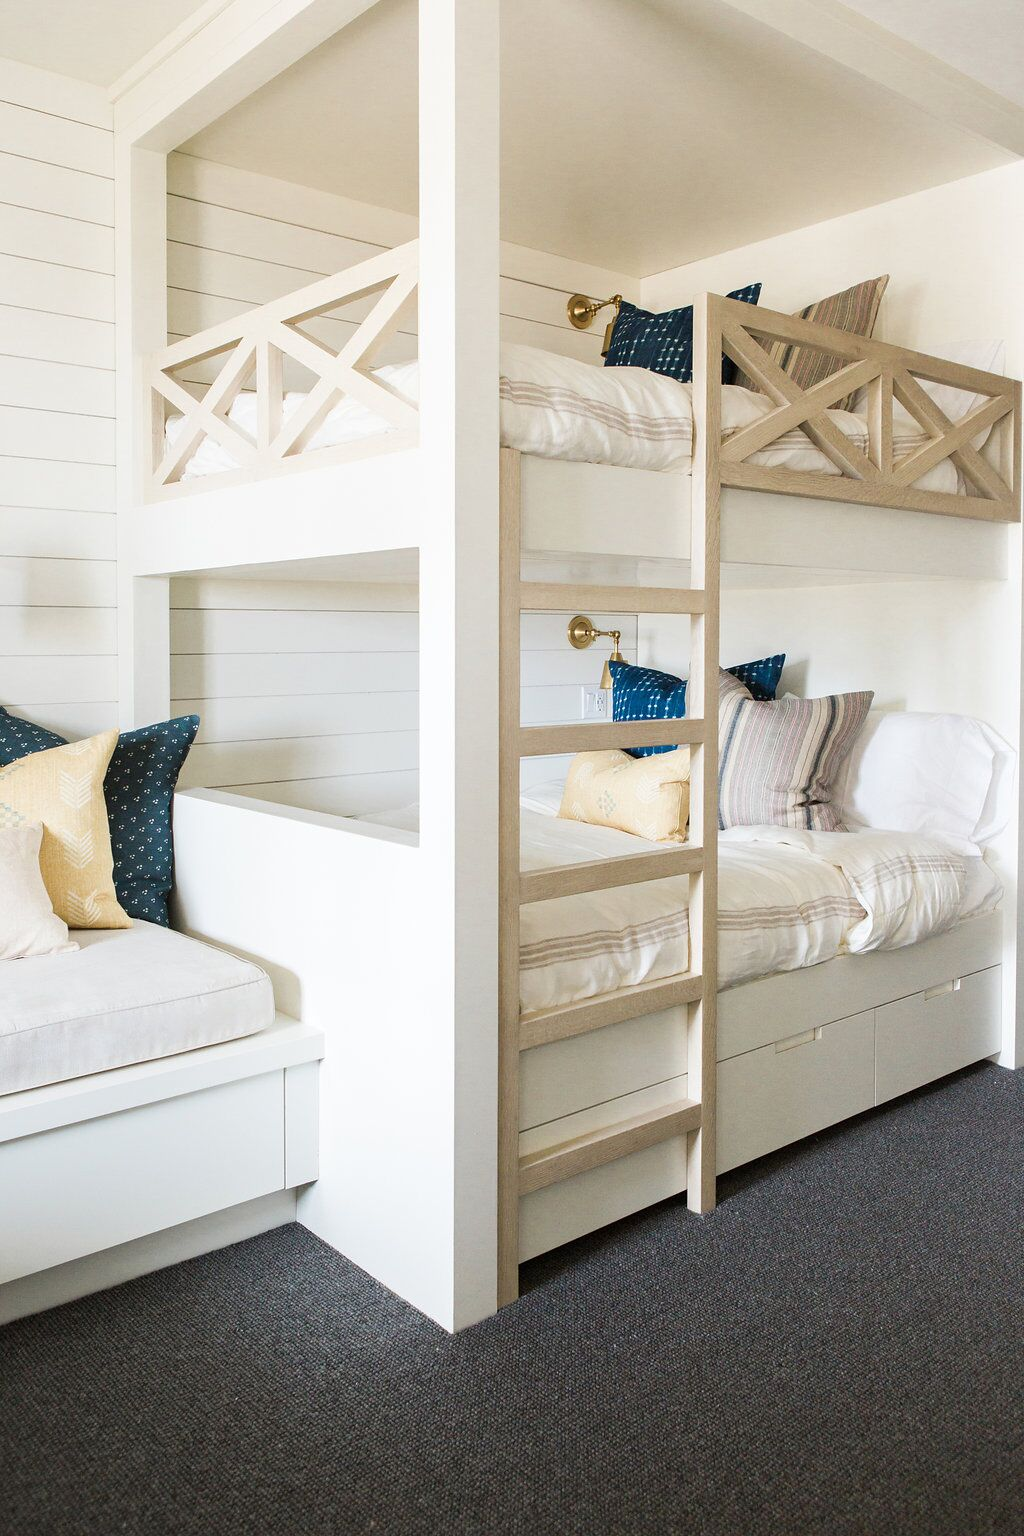 Built in twin bunk beds on grey carpet